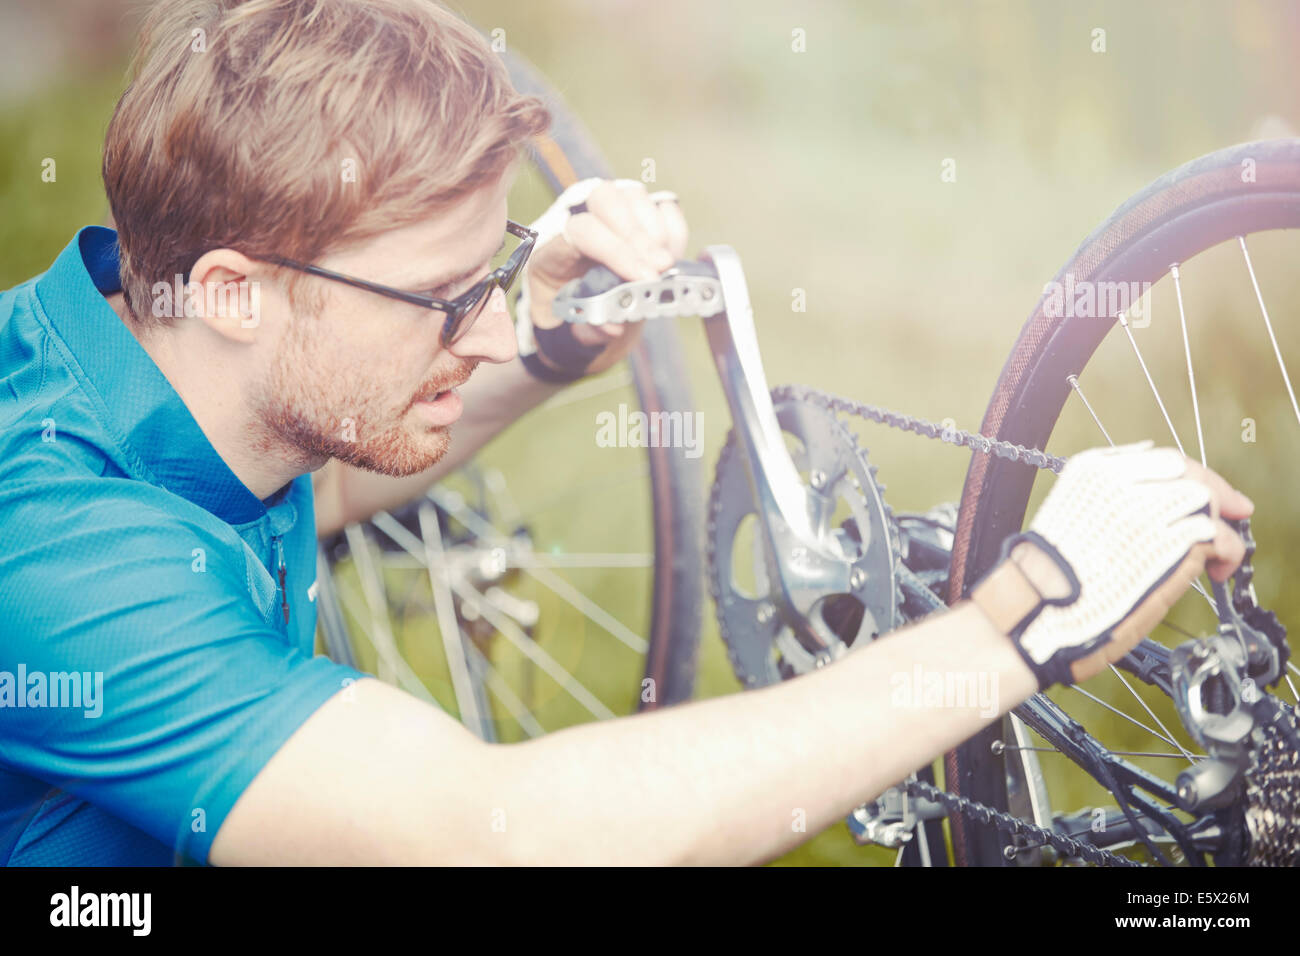 Cyclist mending bicycle chain Stock Photo